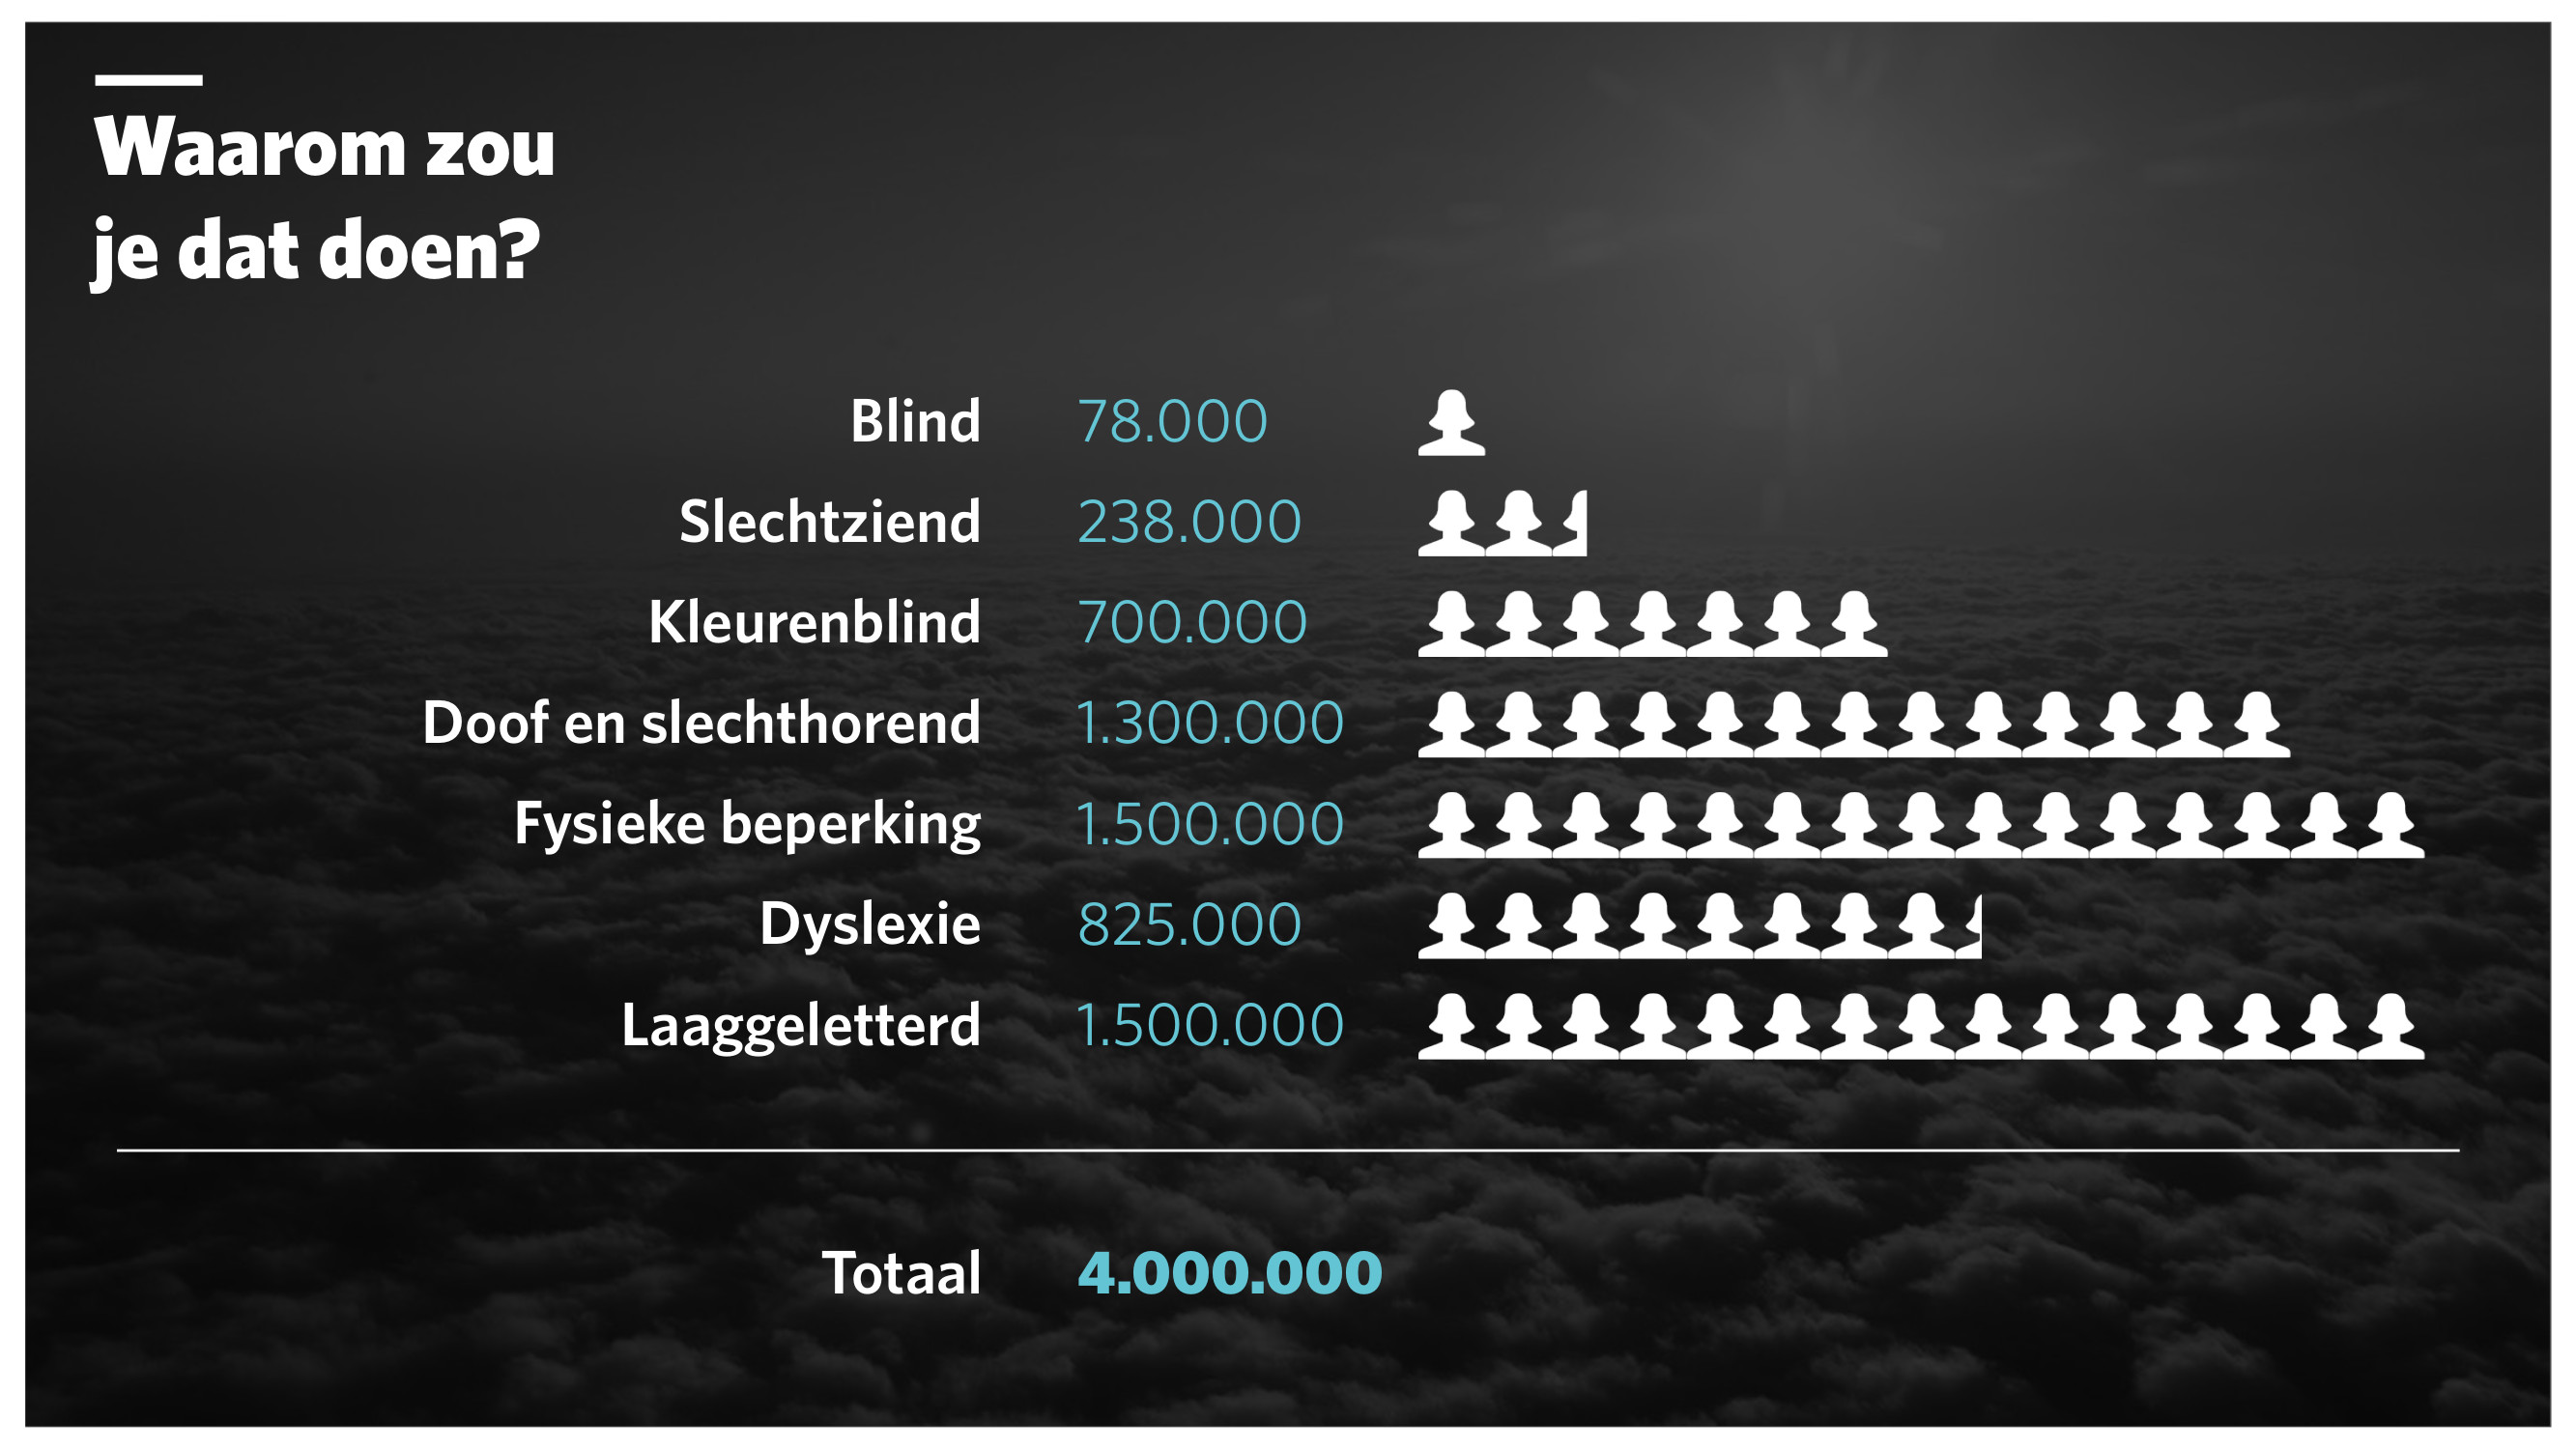 A list of various impairments and the number of affected in the Netherlands. They sum up to 4 million people.